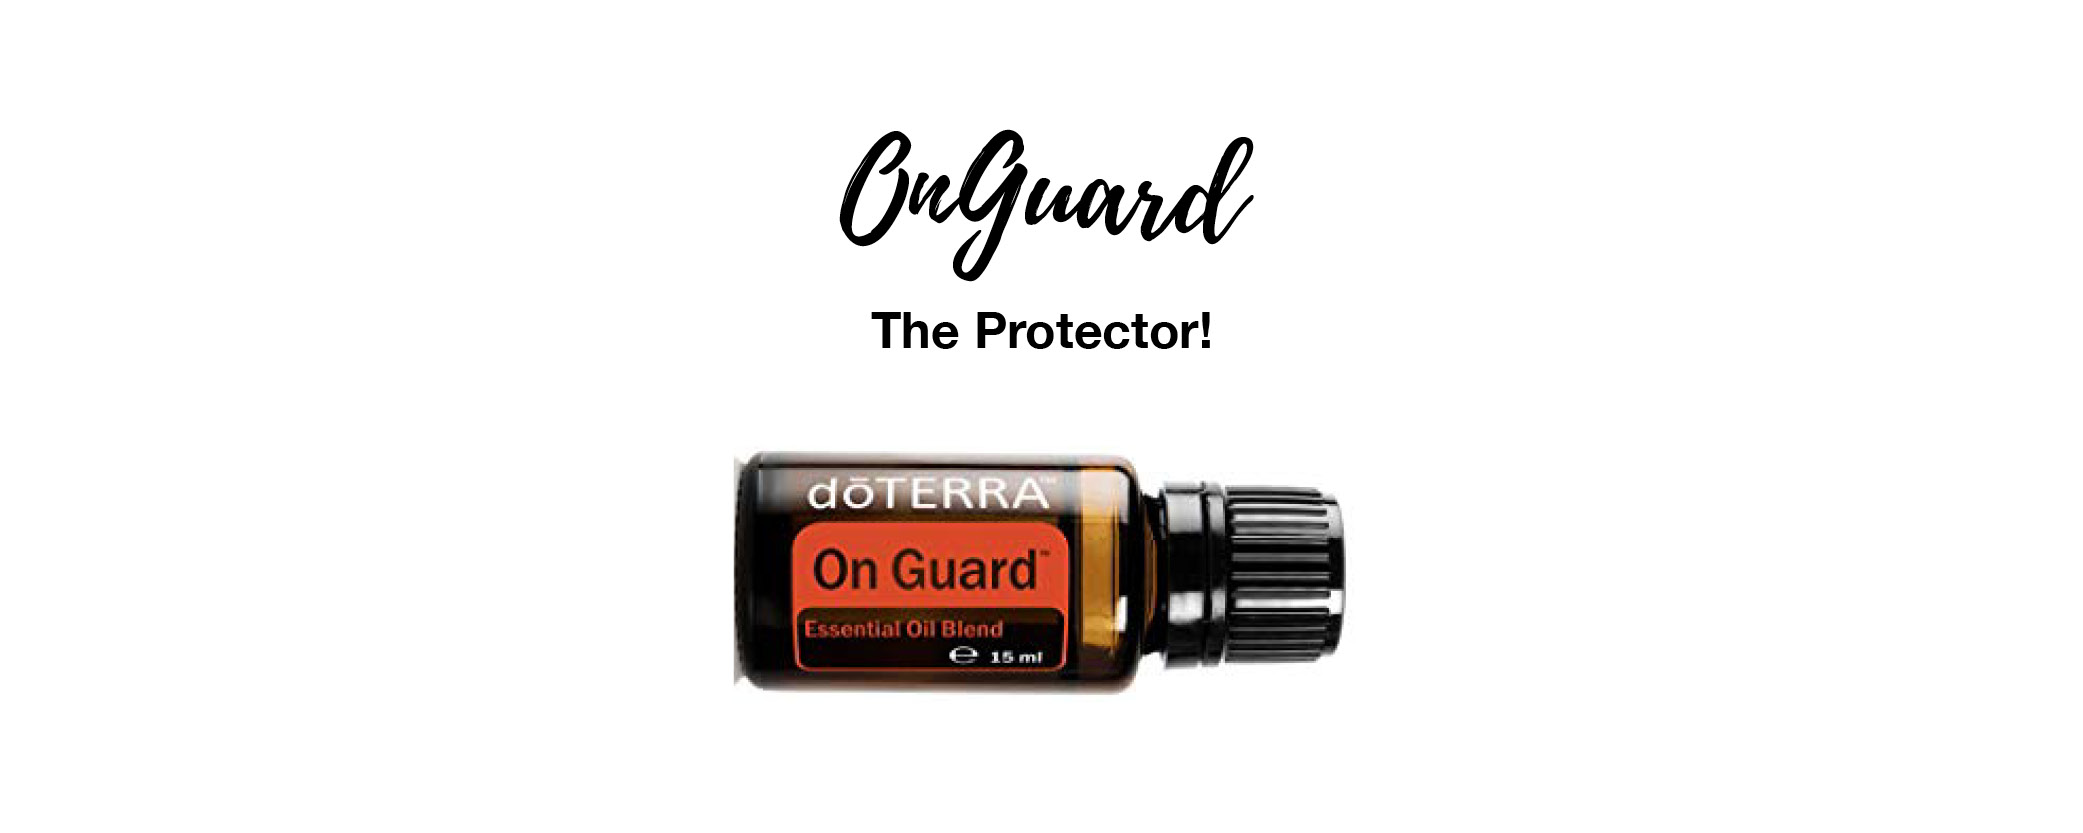 November bogo oils for blog post onguard aromatouch.jpg